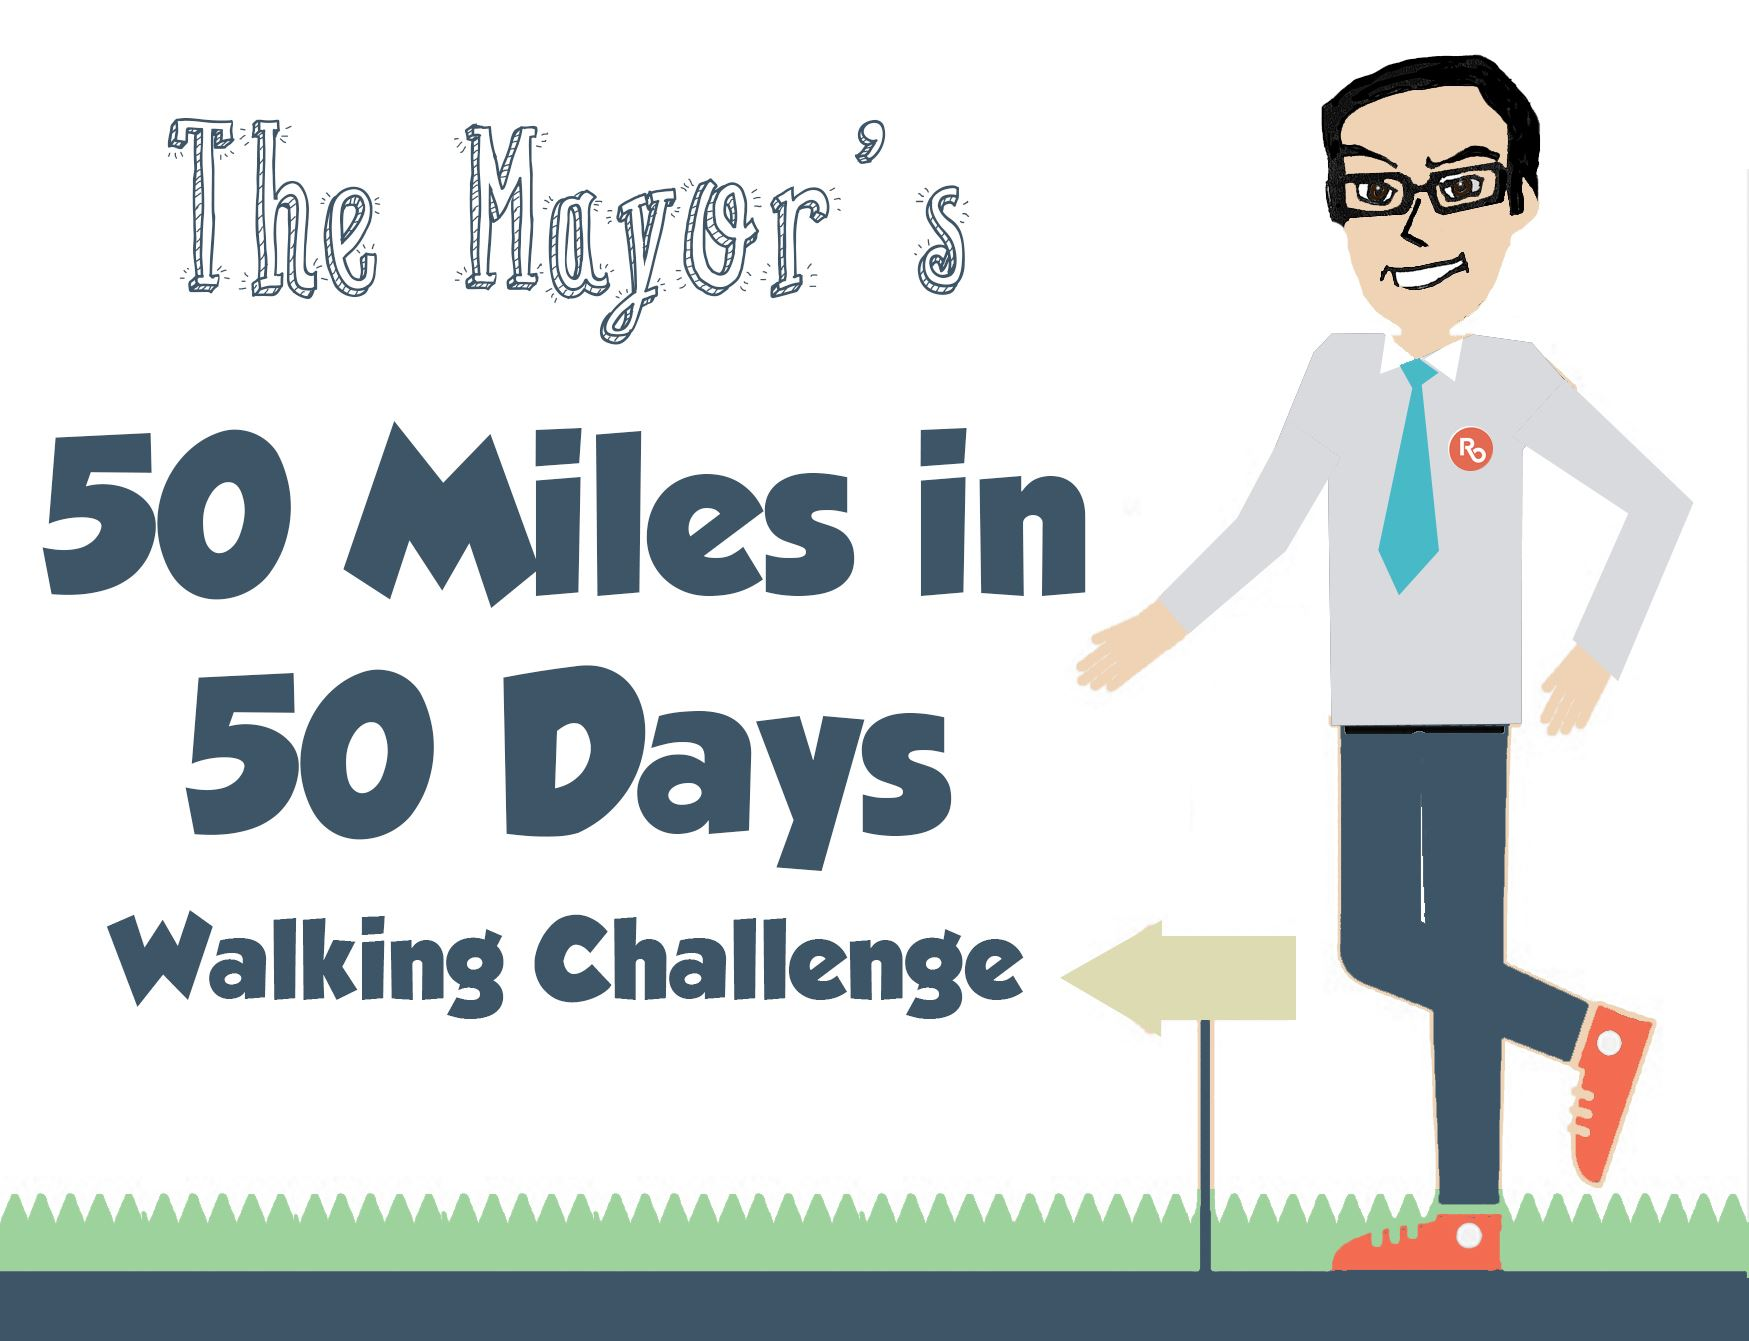 50 Miles in 50 Days